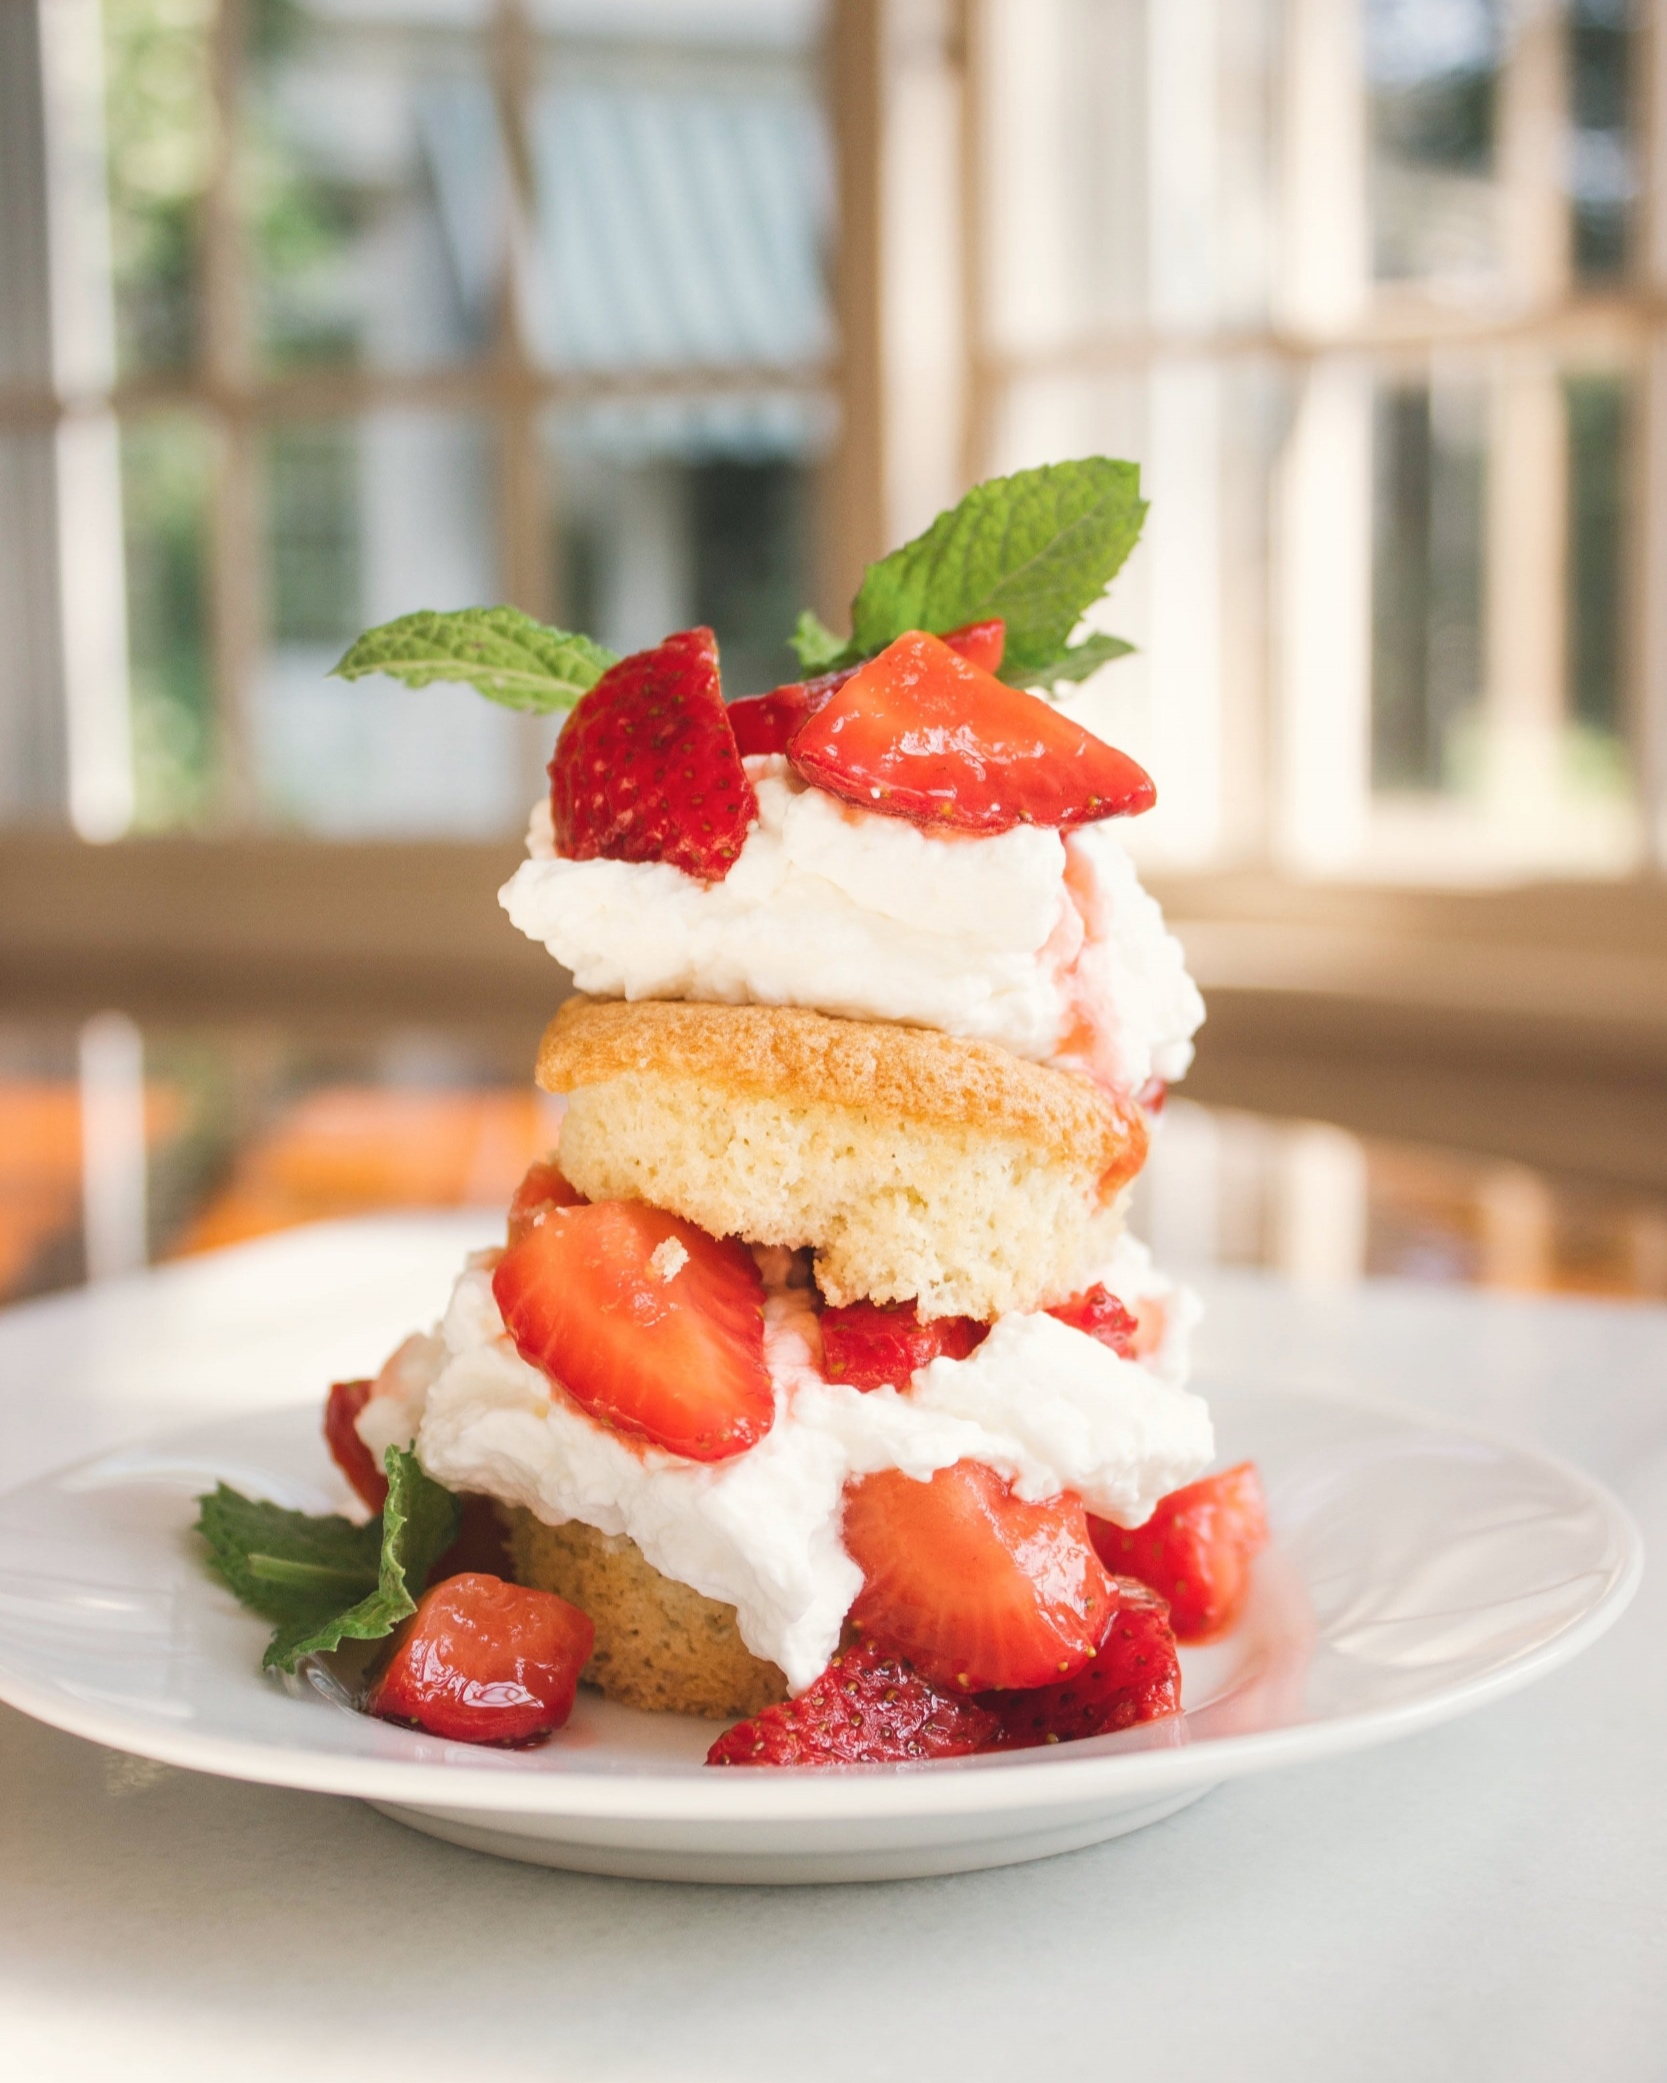 Summer+Strawberry+Shortcake+Sponge+Cake+Mini.jpg